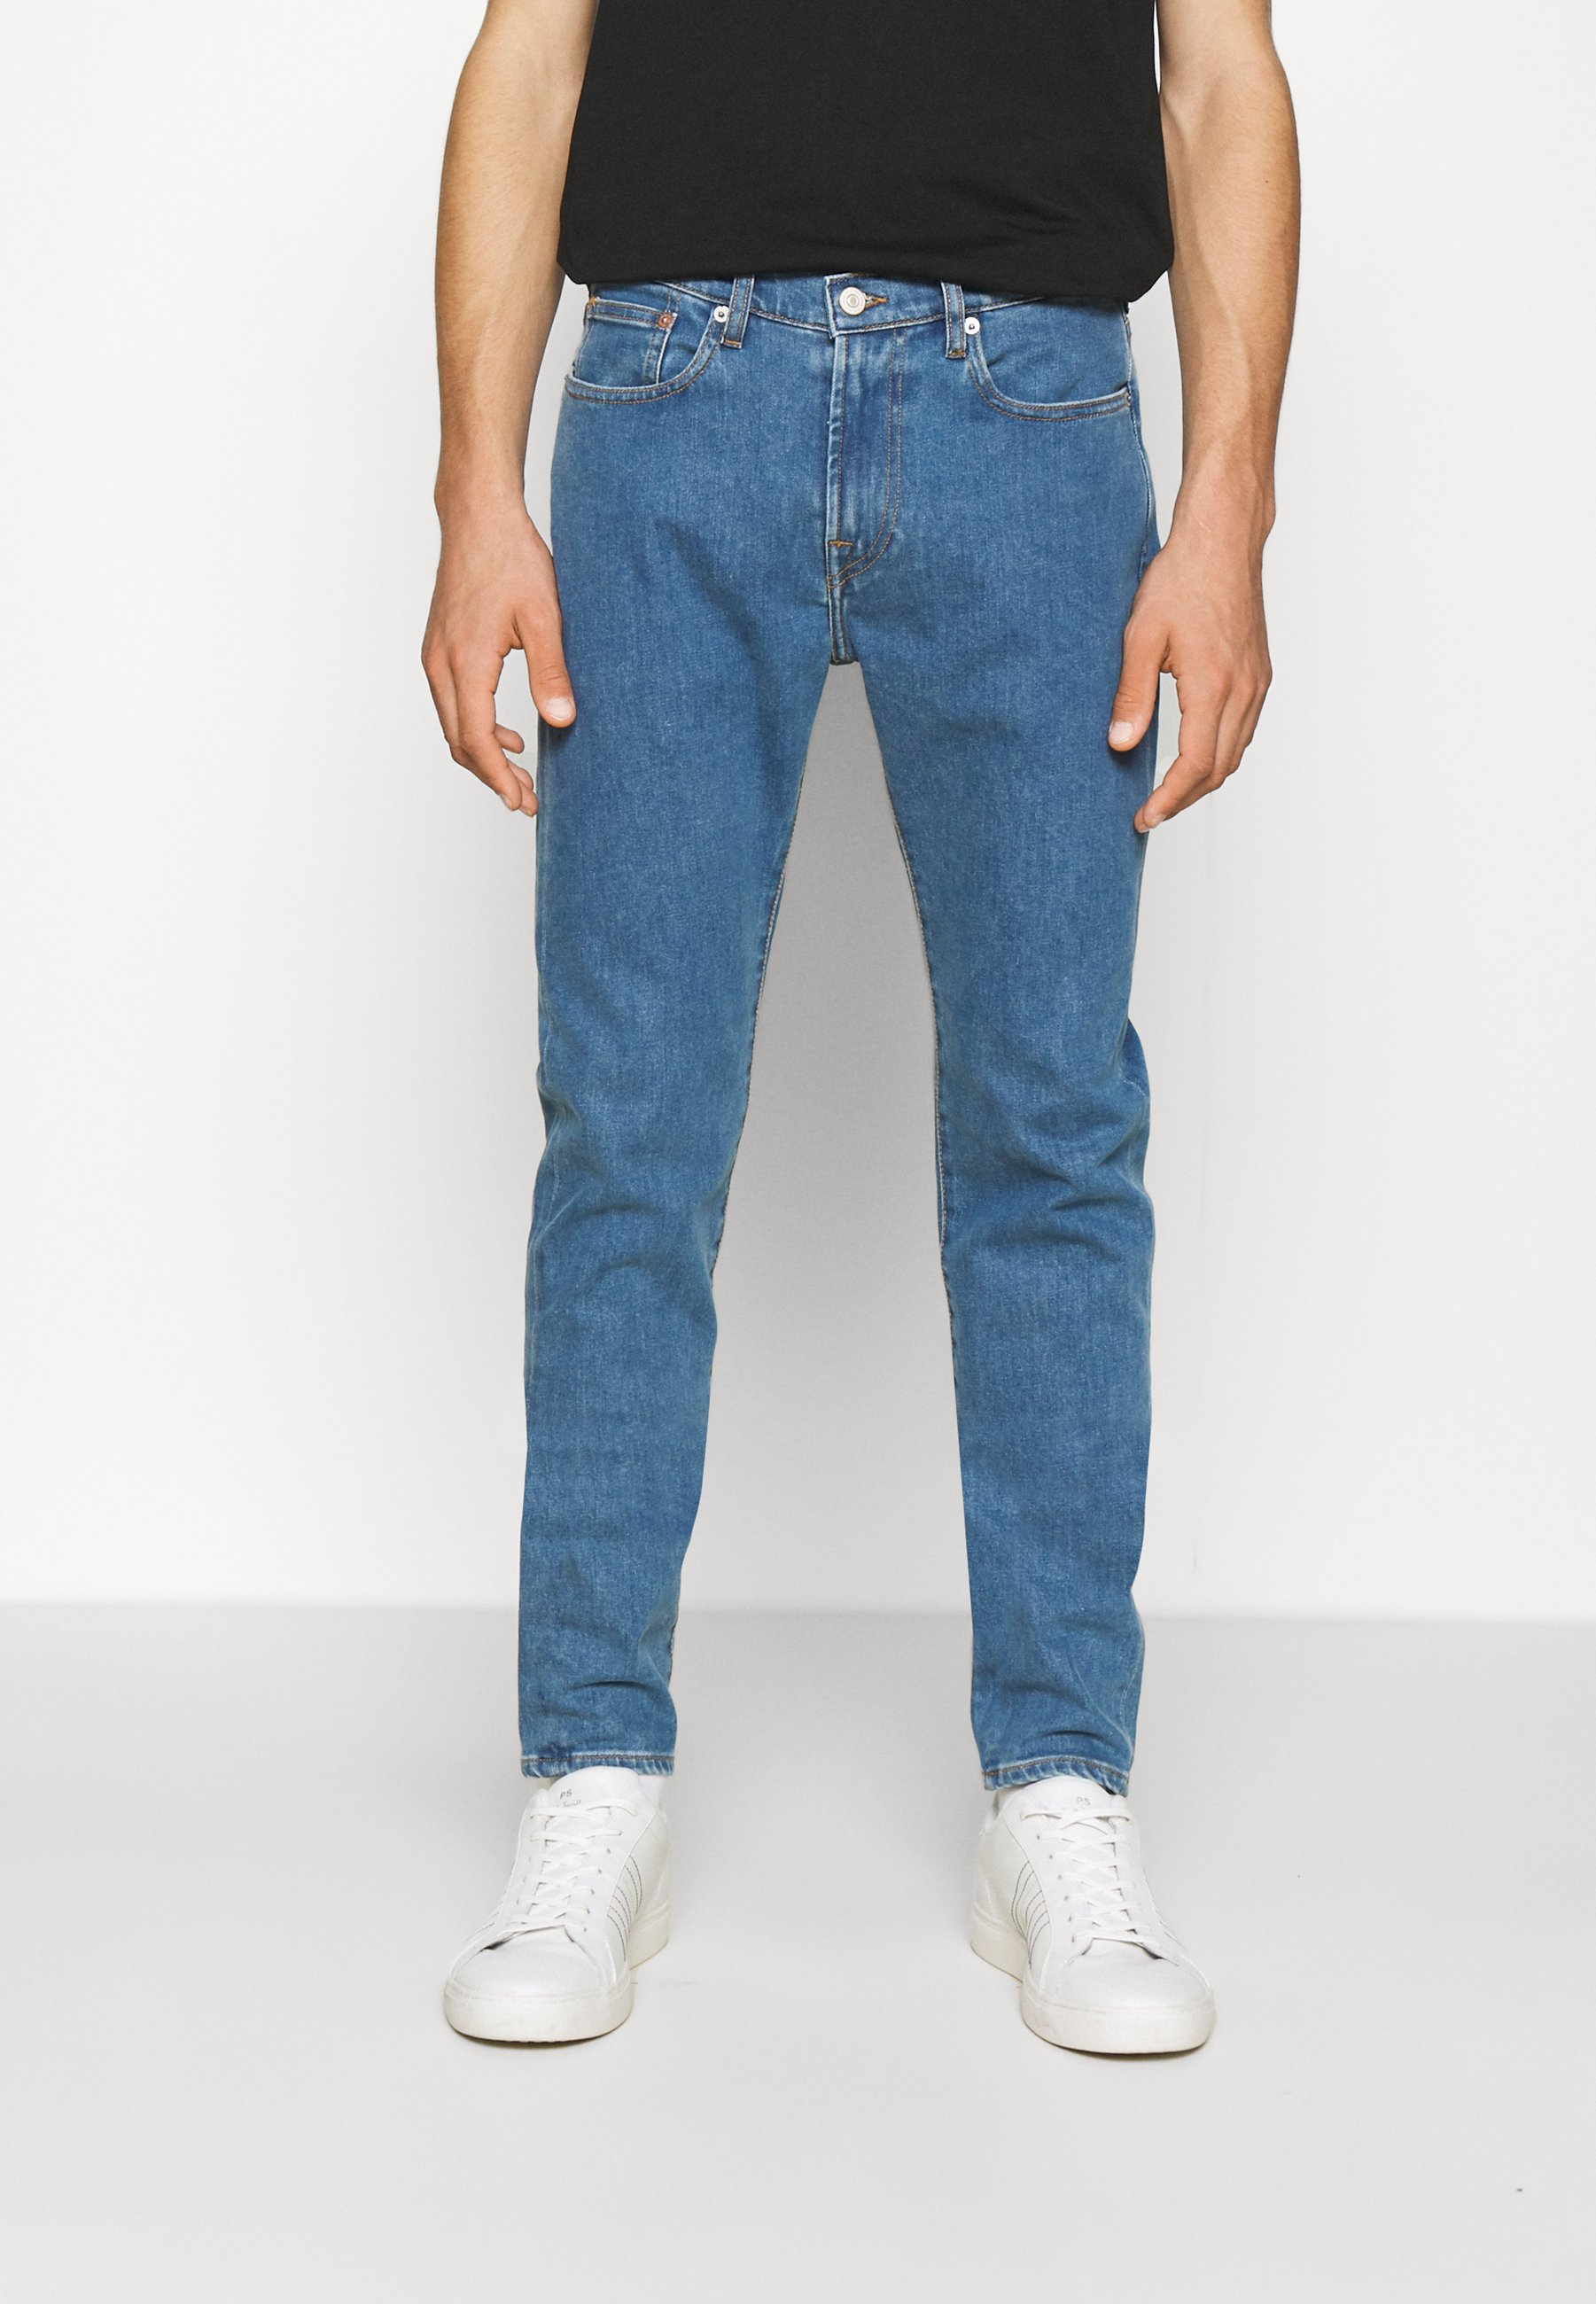 Men Jeans Tapered Fit